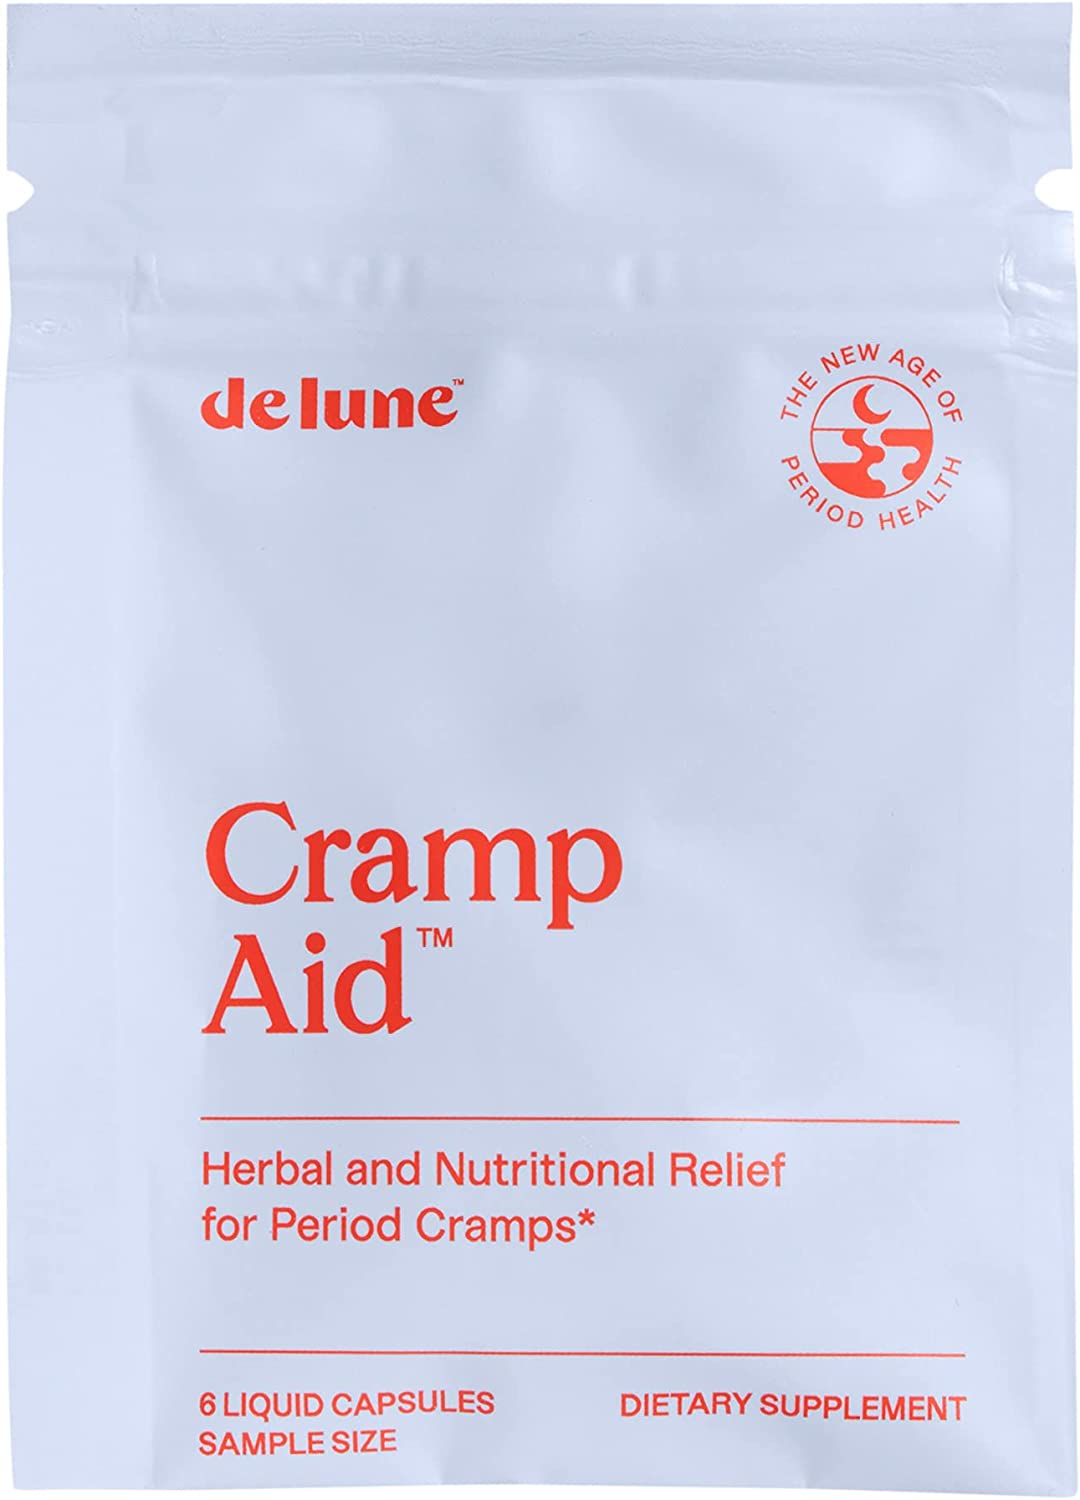 De Lune, Cramp Aid, Natural Relief for Period Cramps, Sample Size